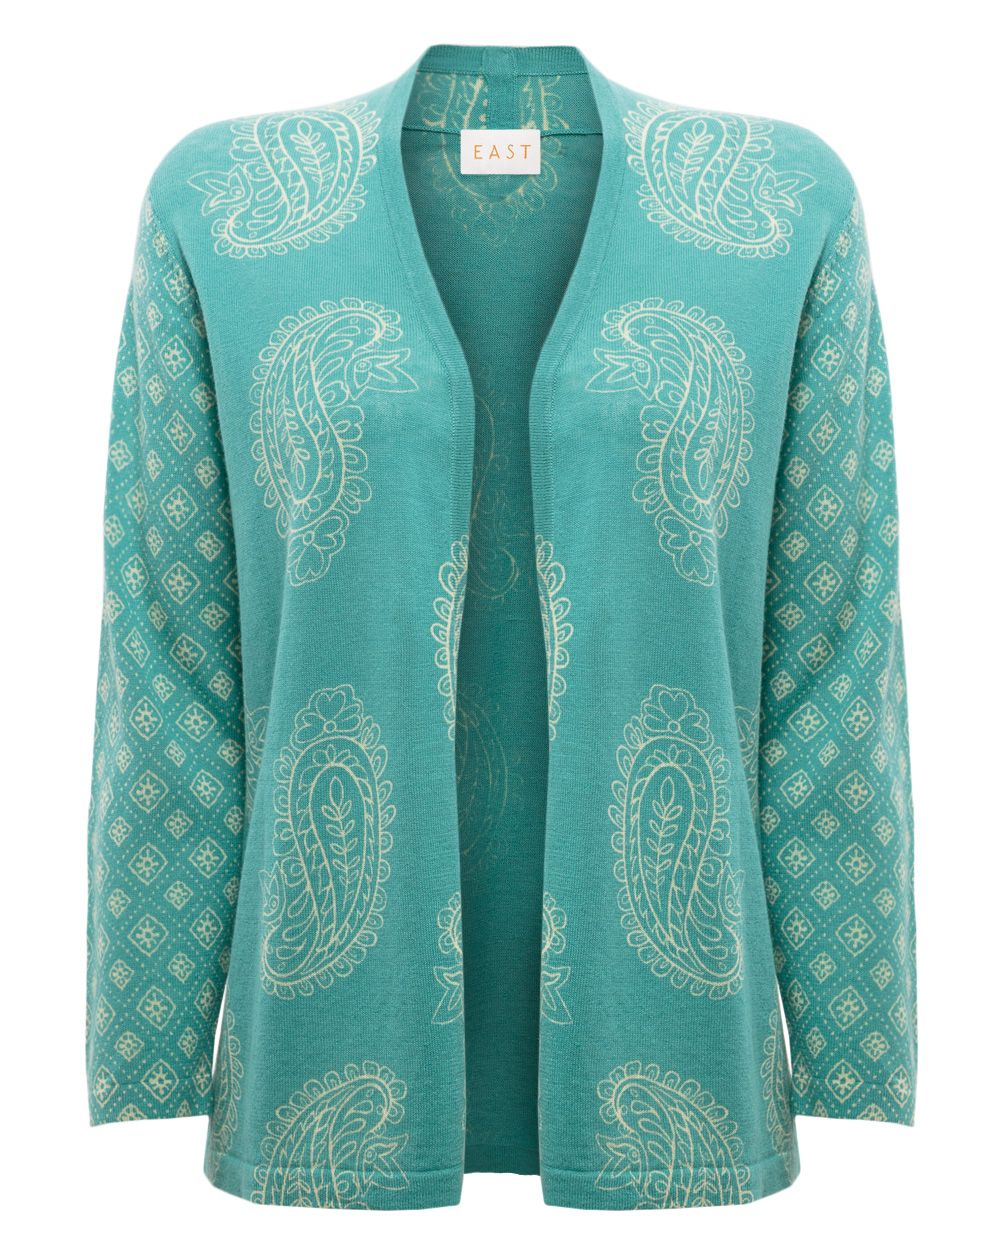 Paisley edge to edge cardigan